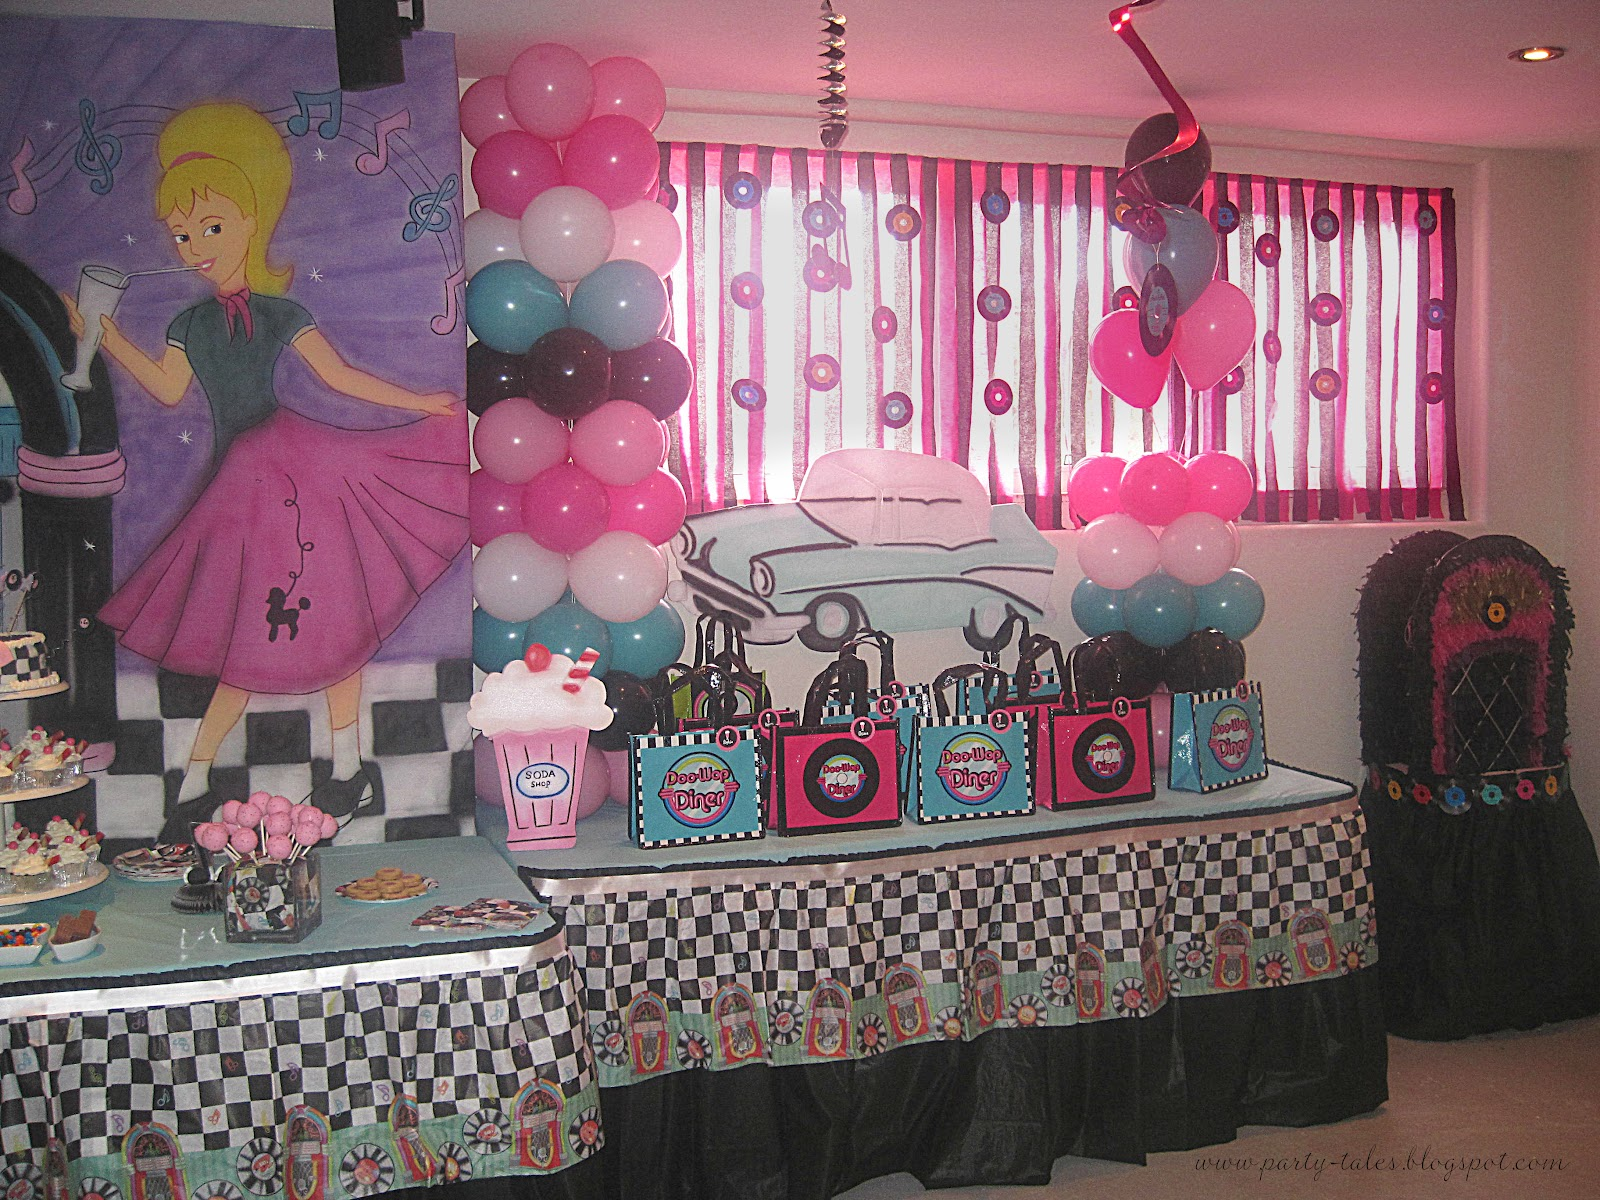 50s Themed Decor Room Overview By Wizard Connection   Help Your Guests Rock  Around The Clock! | Themed Decor | Pinterest | Decor Room, Clocks And Rock